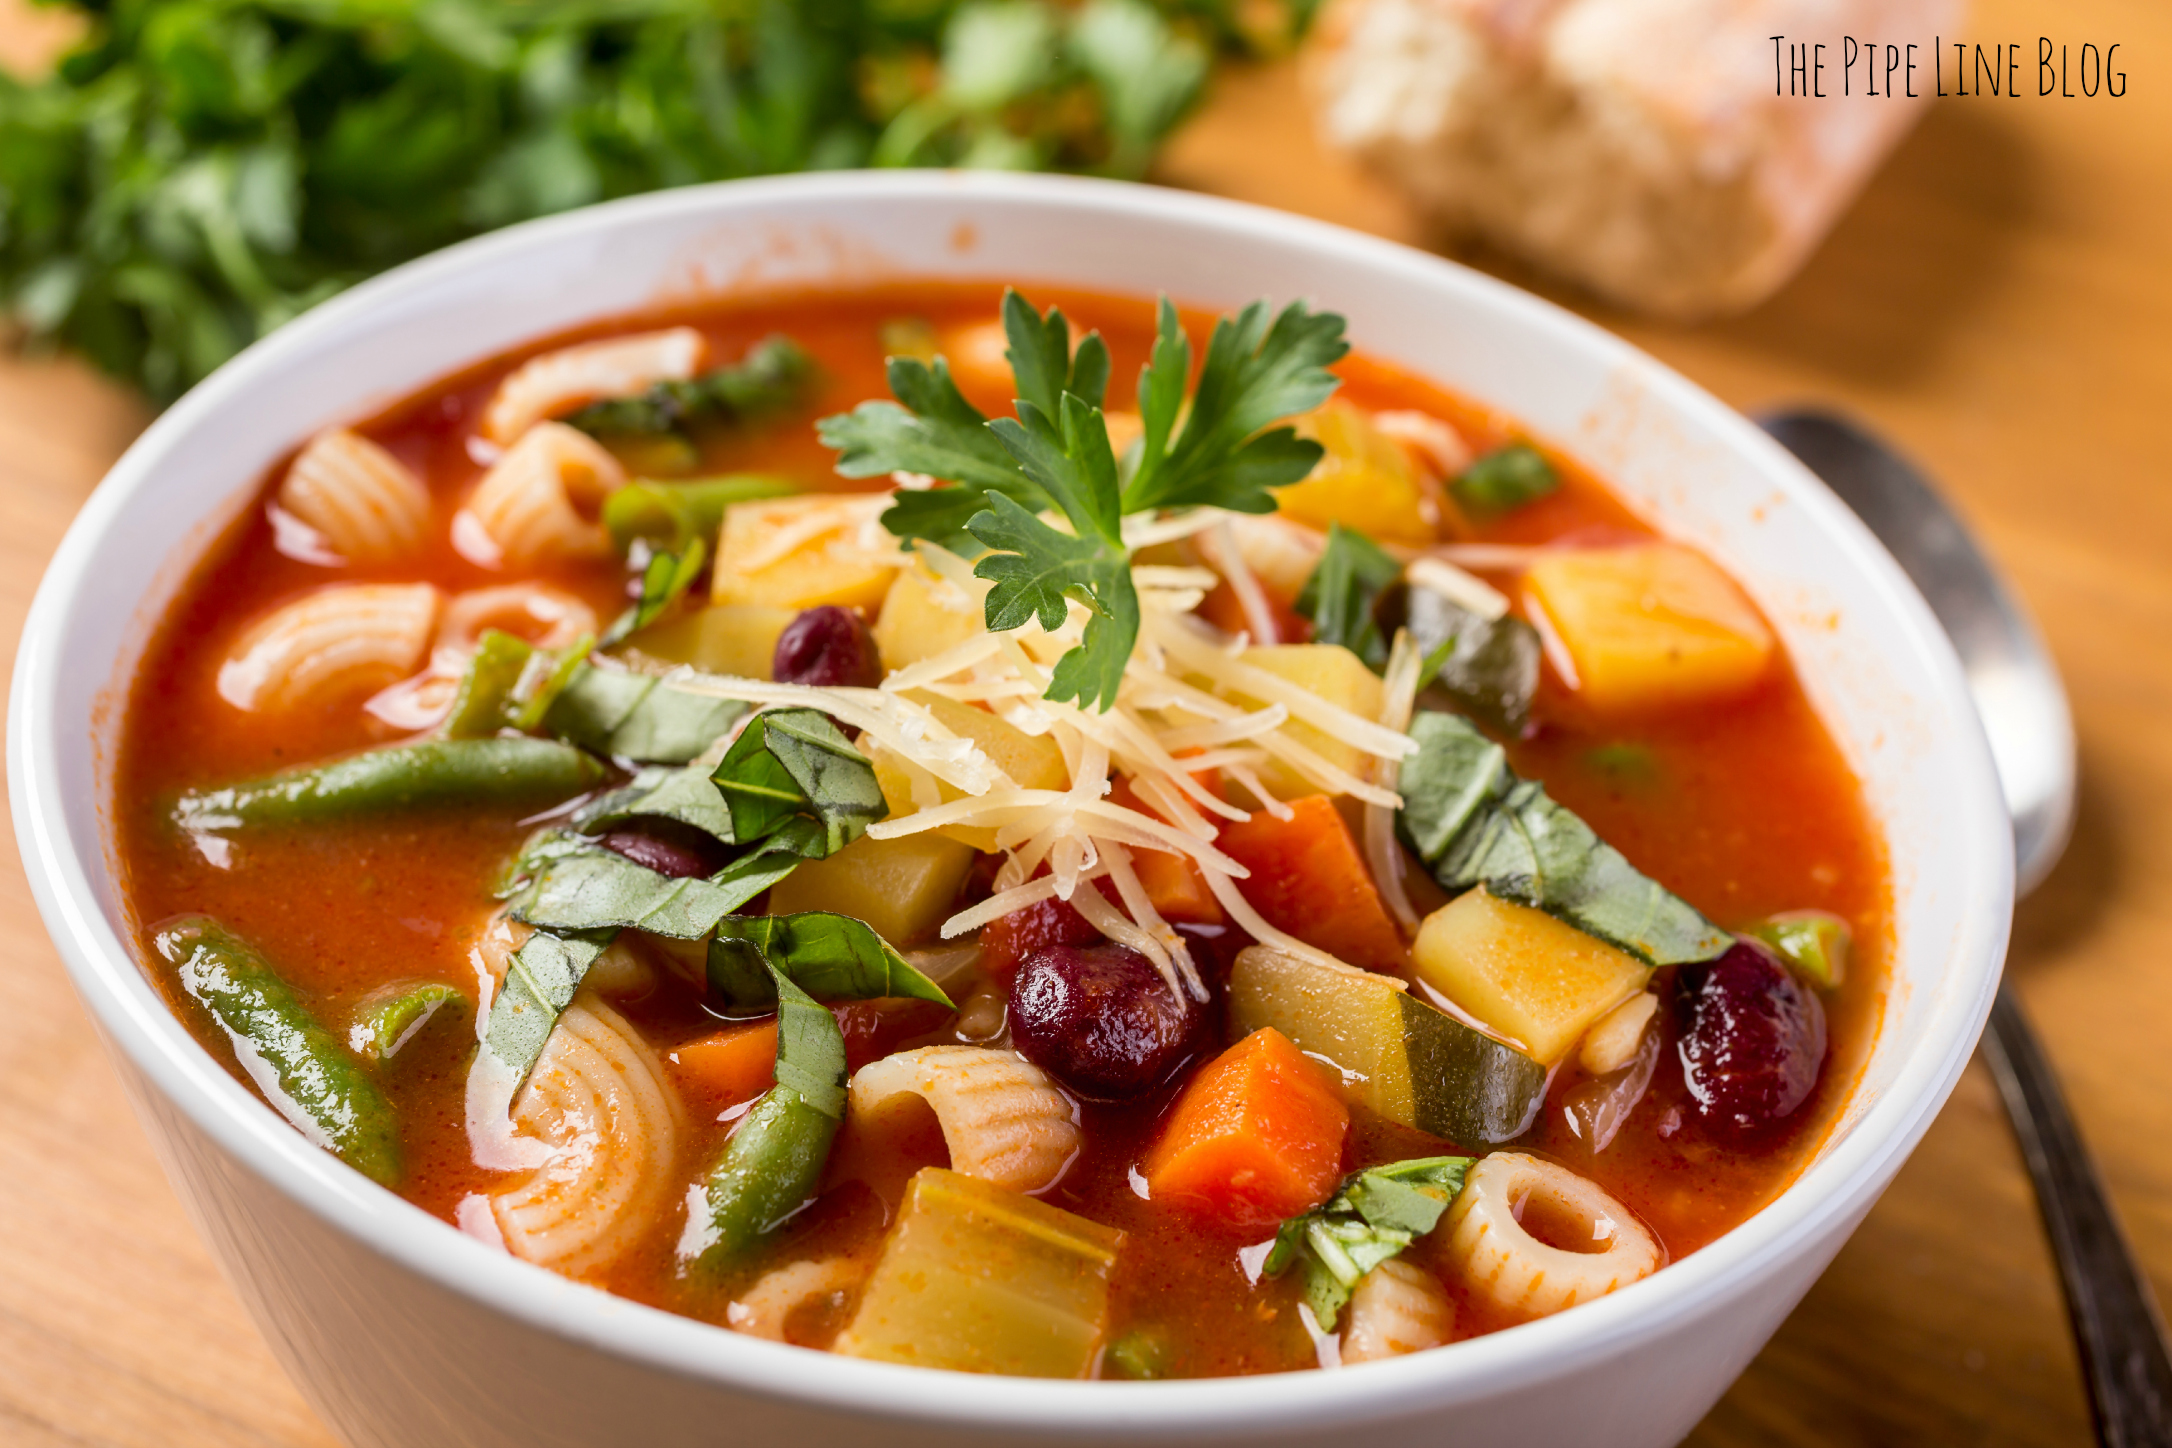 Piping Rock - The Pipe Line - Warm Up This Winter With Magical Vegan Minestrone